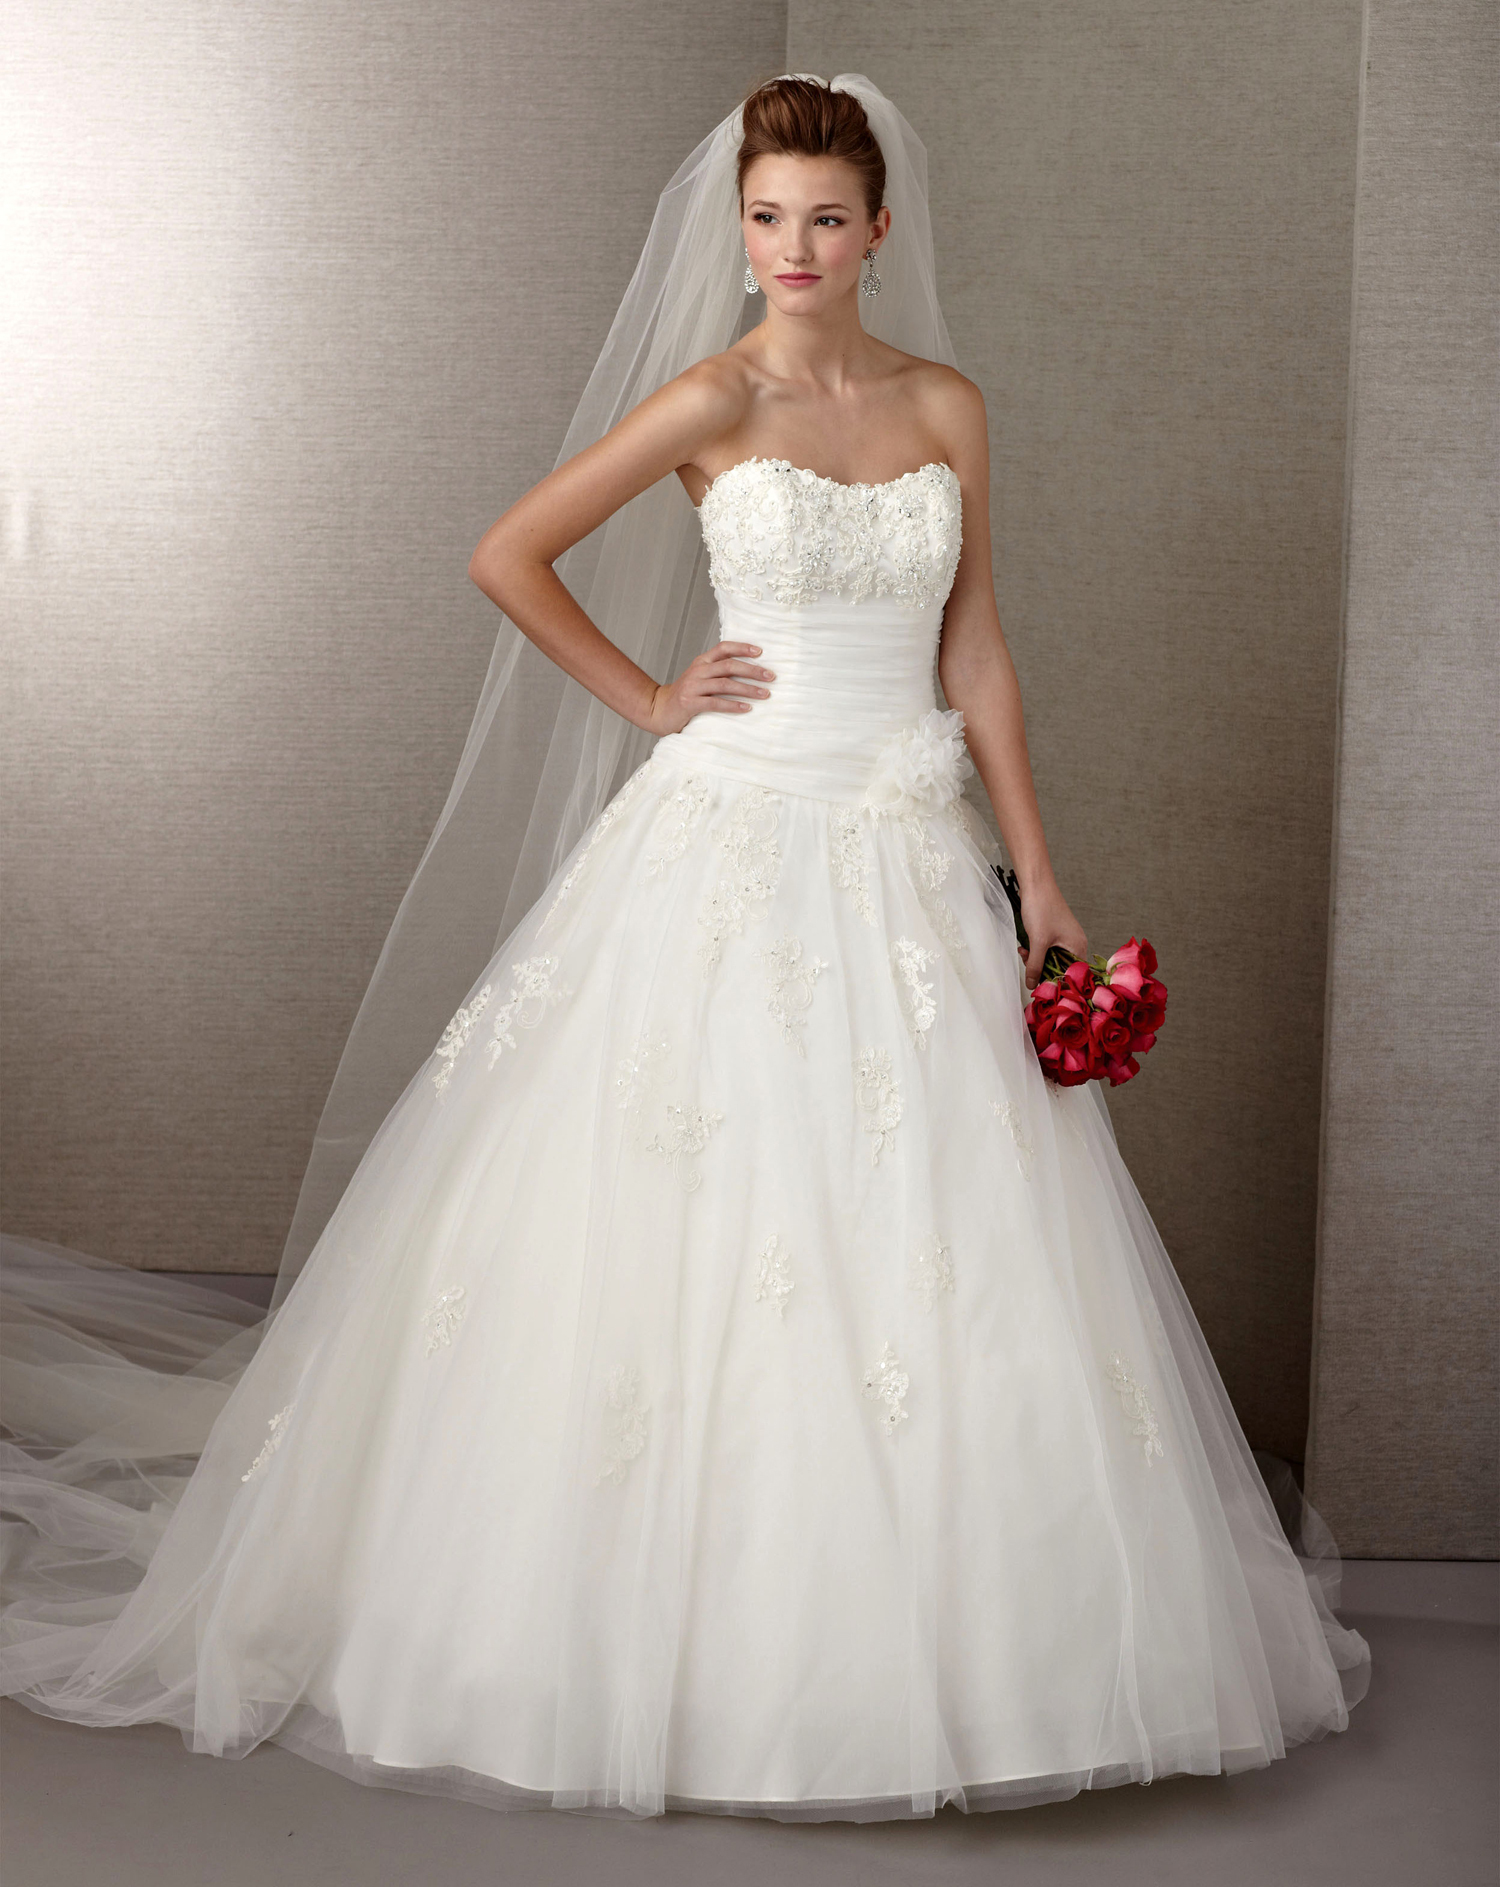 Ball gown strapless wedding dress under 100 dollars sang for 100 dollar wedding dresses